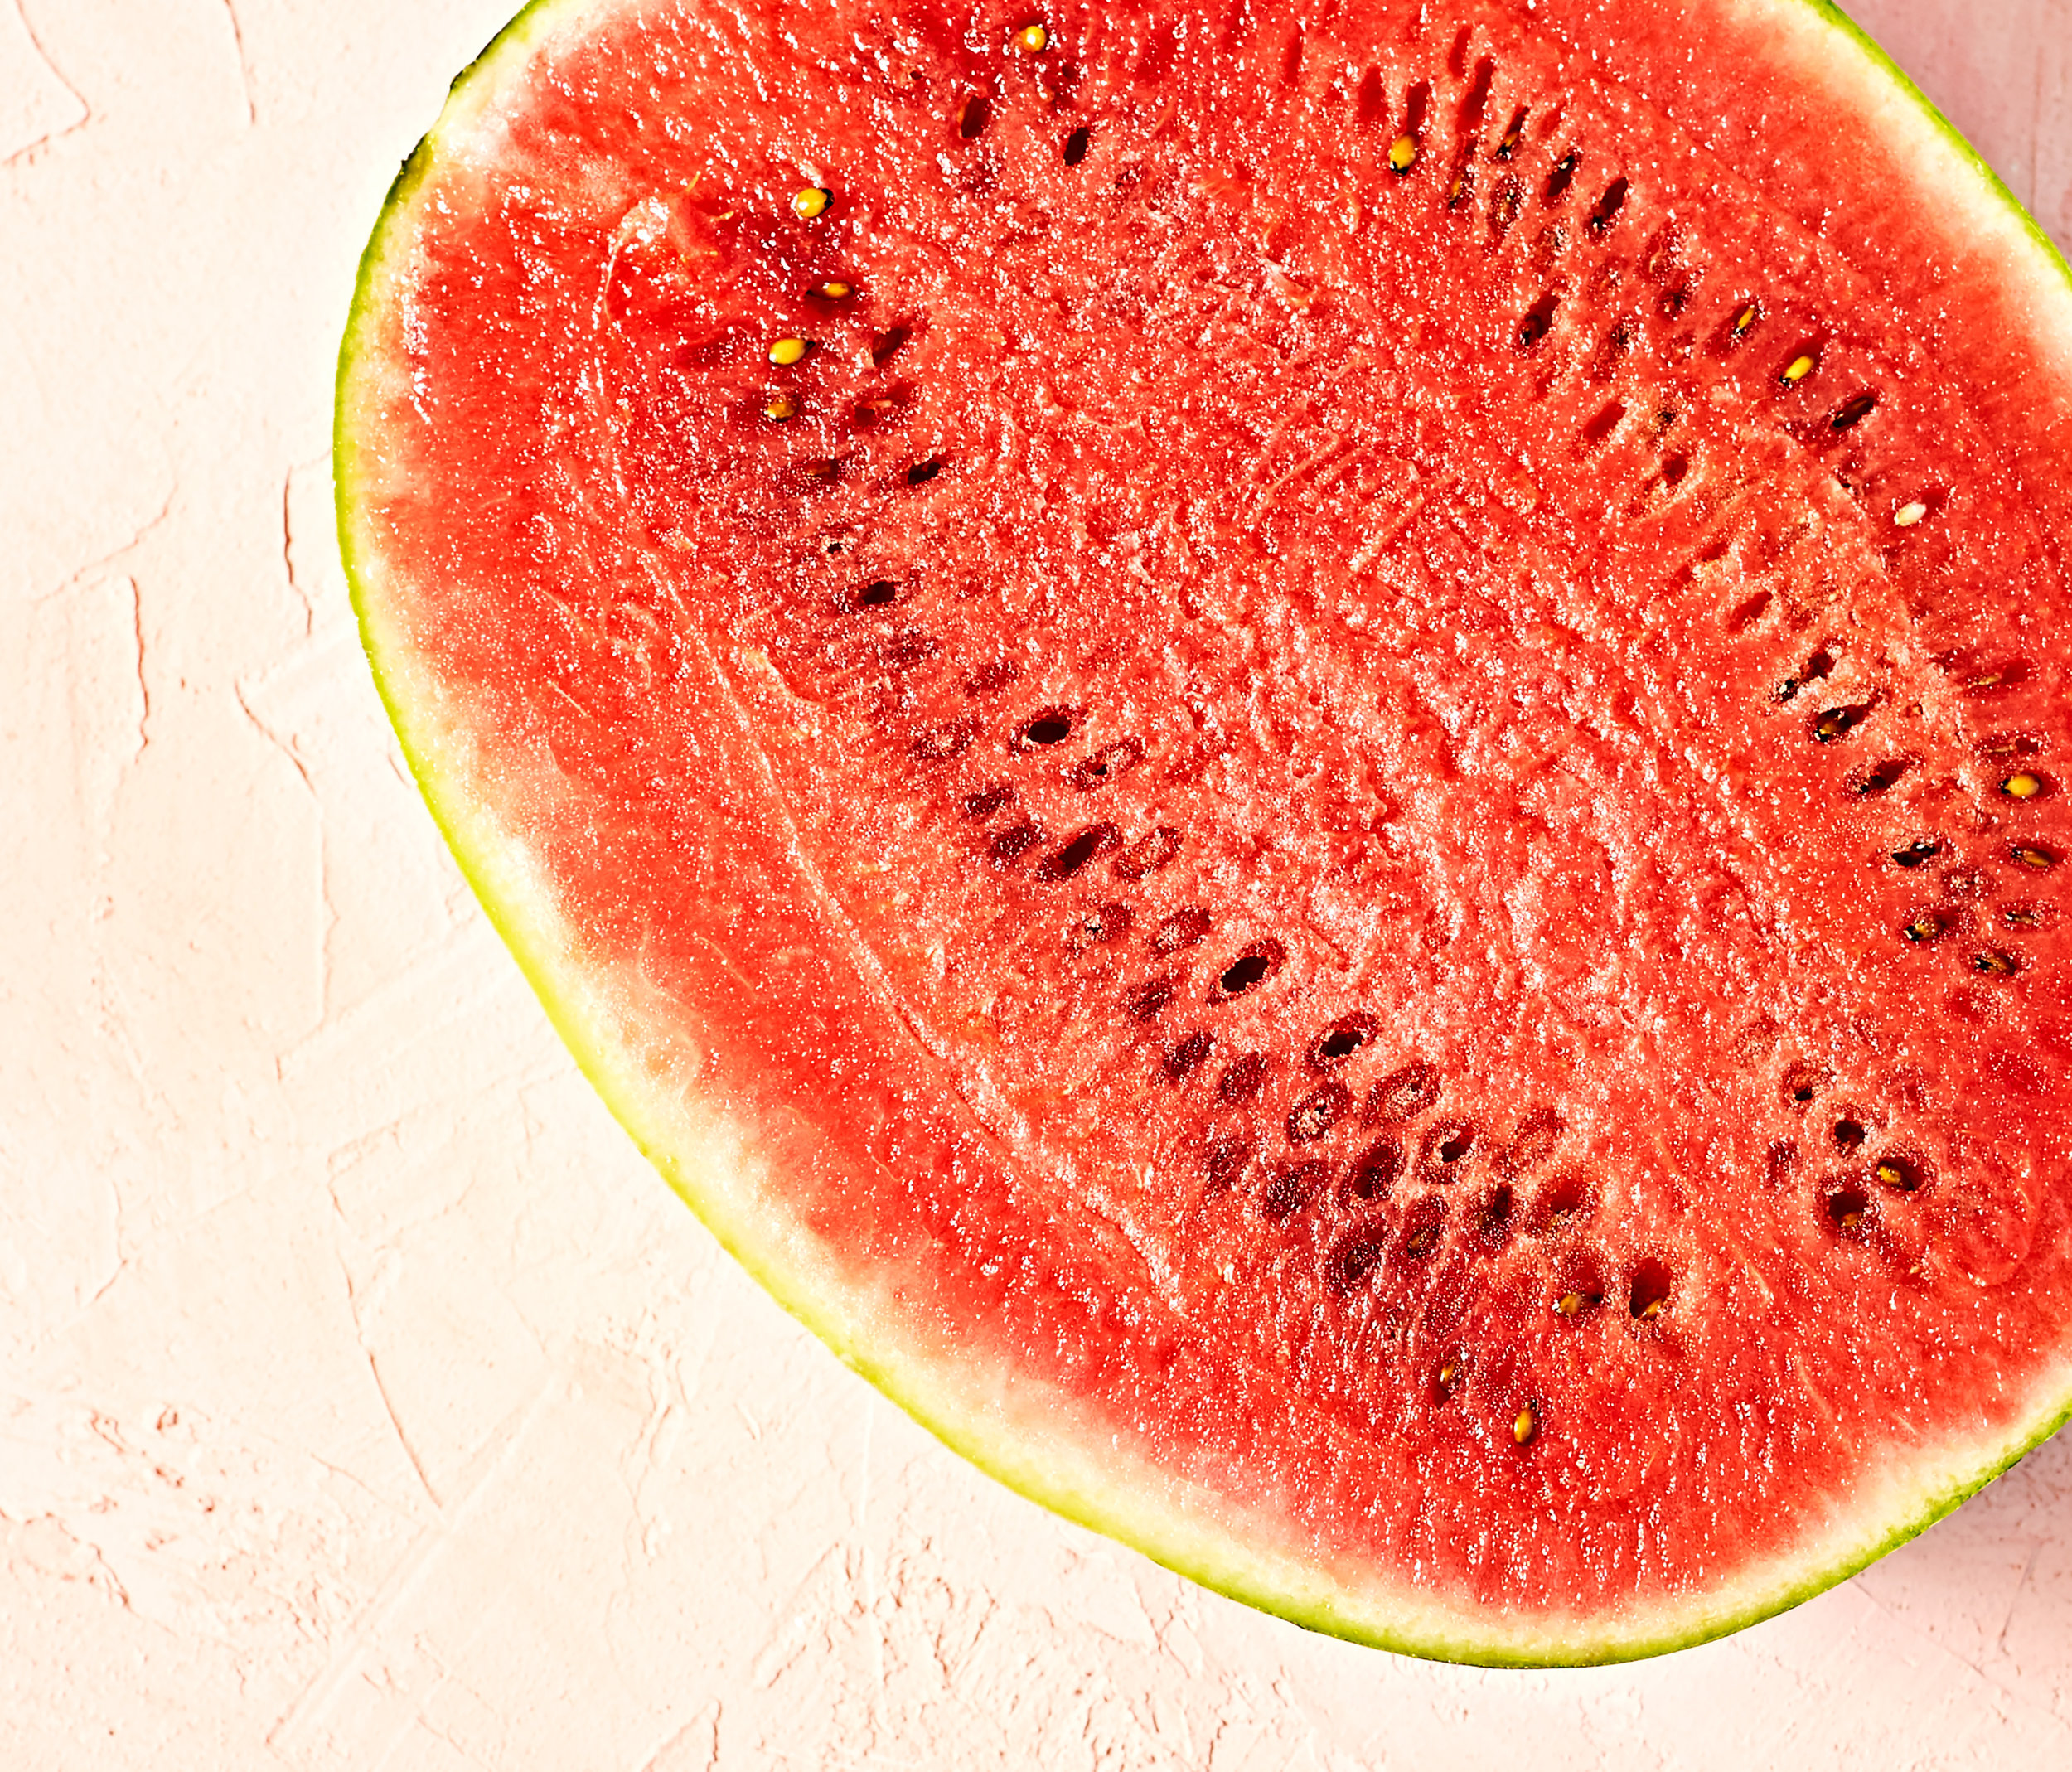 Half of watermelon with seeds